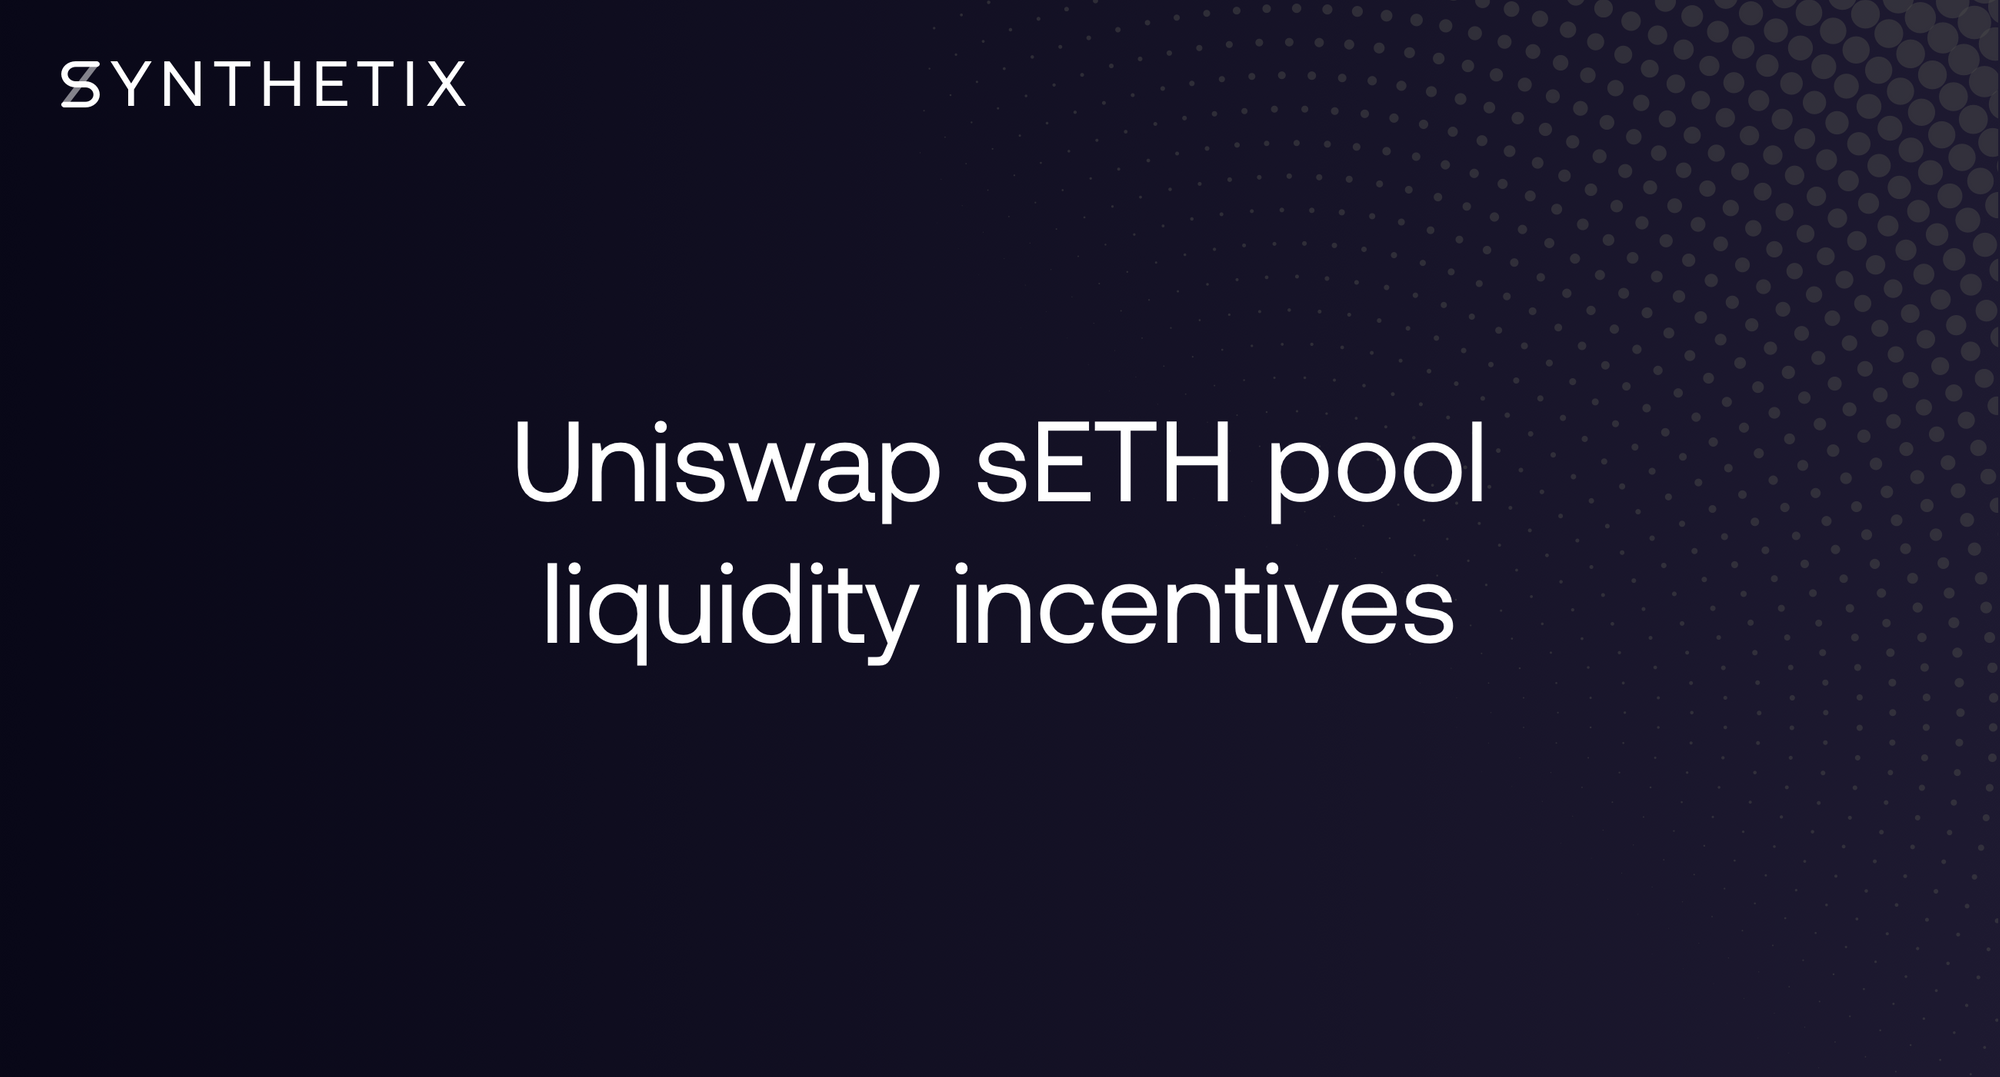 Uniswap sETH Pool Liquidity Incentives